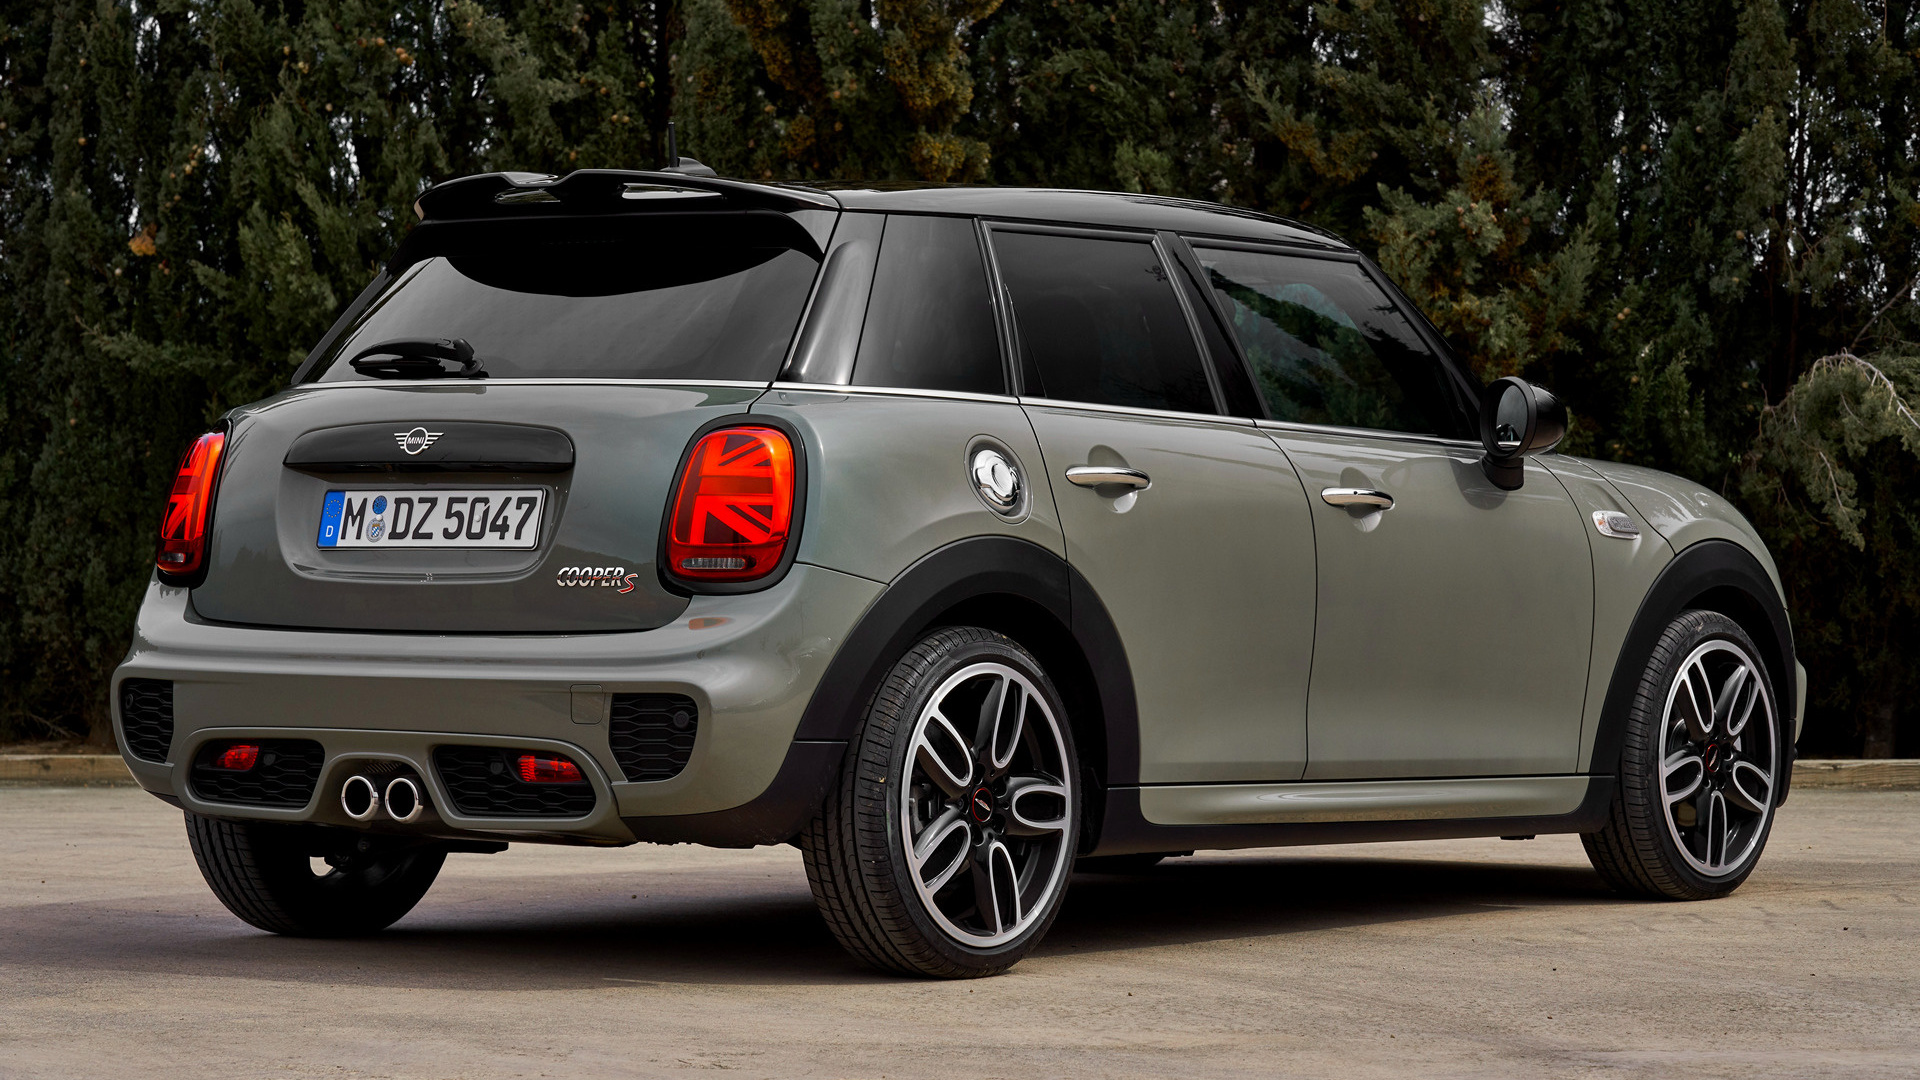 2018 Mini Cooper S JCW Package 5-door - Wallpapers and HD ...